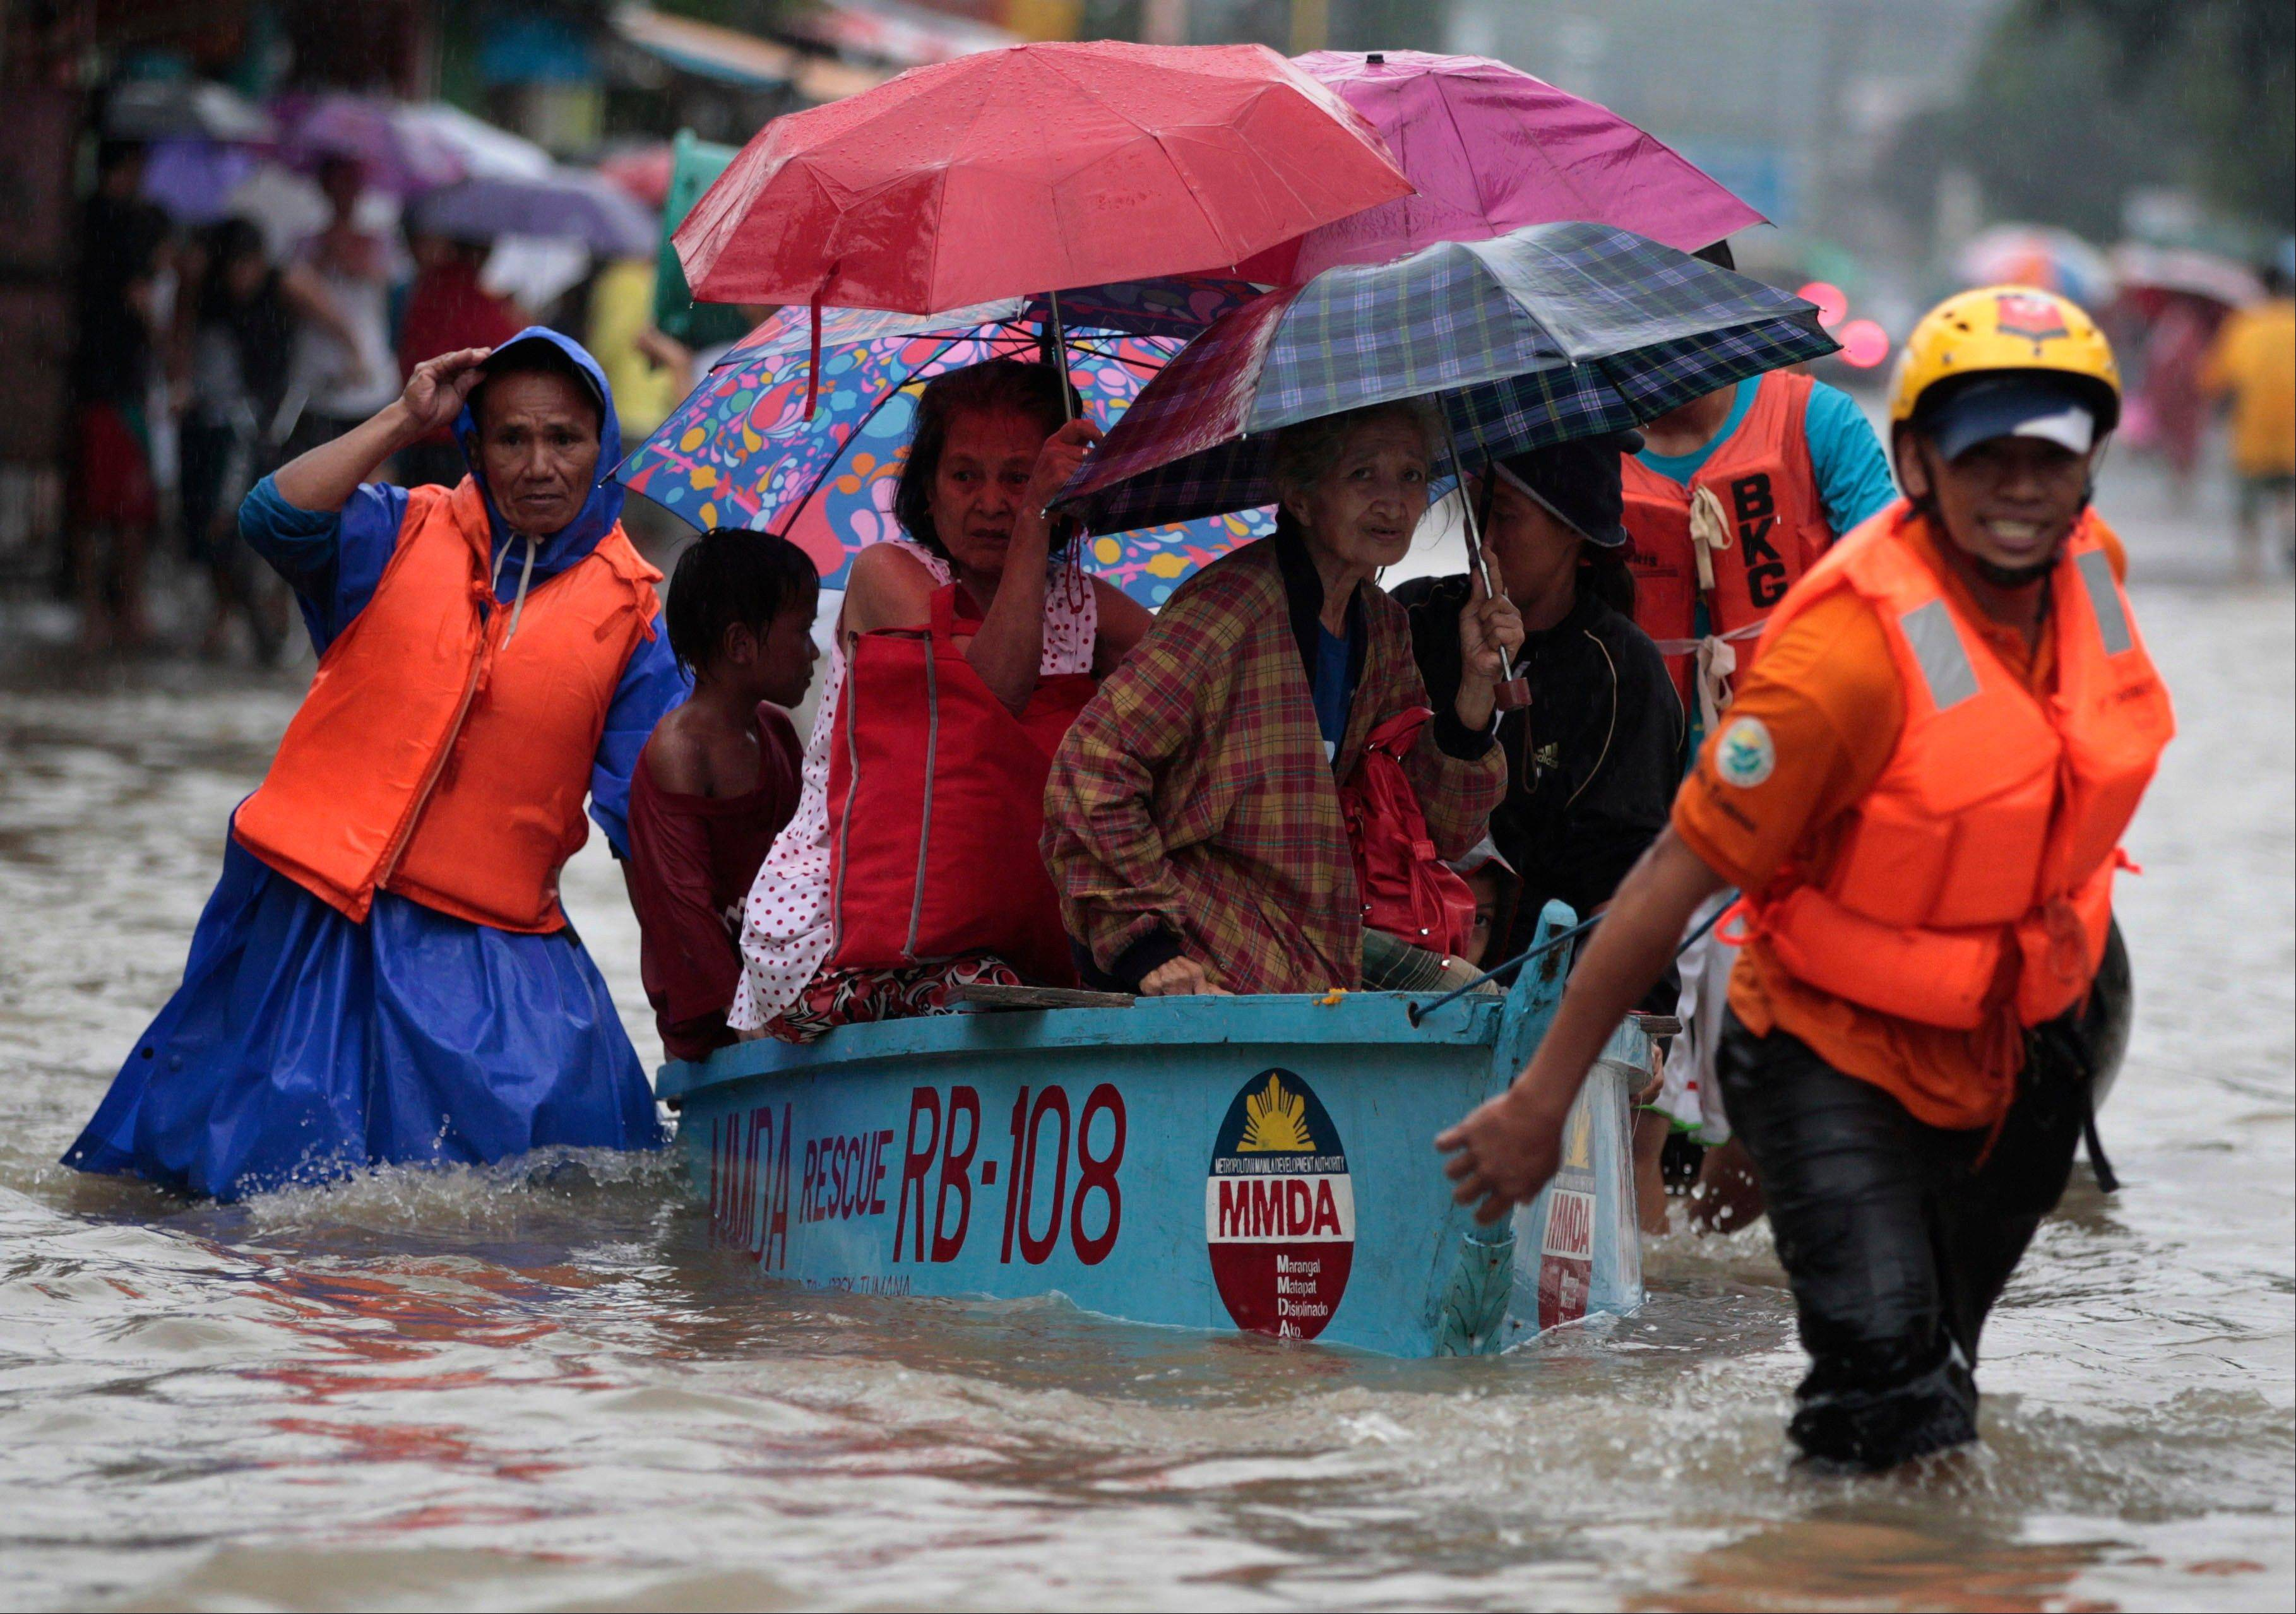 Rescuers pull a boat carrying residents as they enforce evacuation at an area flooded due to a swollen river in Marikina city, east of Manila, Philippines Tuesday, Aug. 20, 2013. Some of the Philippines' heaviest rains on record fell for a second day Tuesday, turning the capital's roads into rivers and trapping tens of thousands of people in homes and shelters. The government suspended all work except rescues and disaster response.